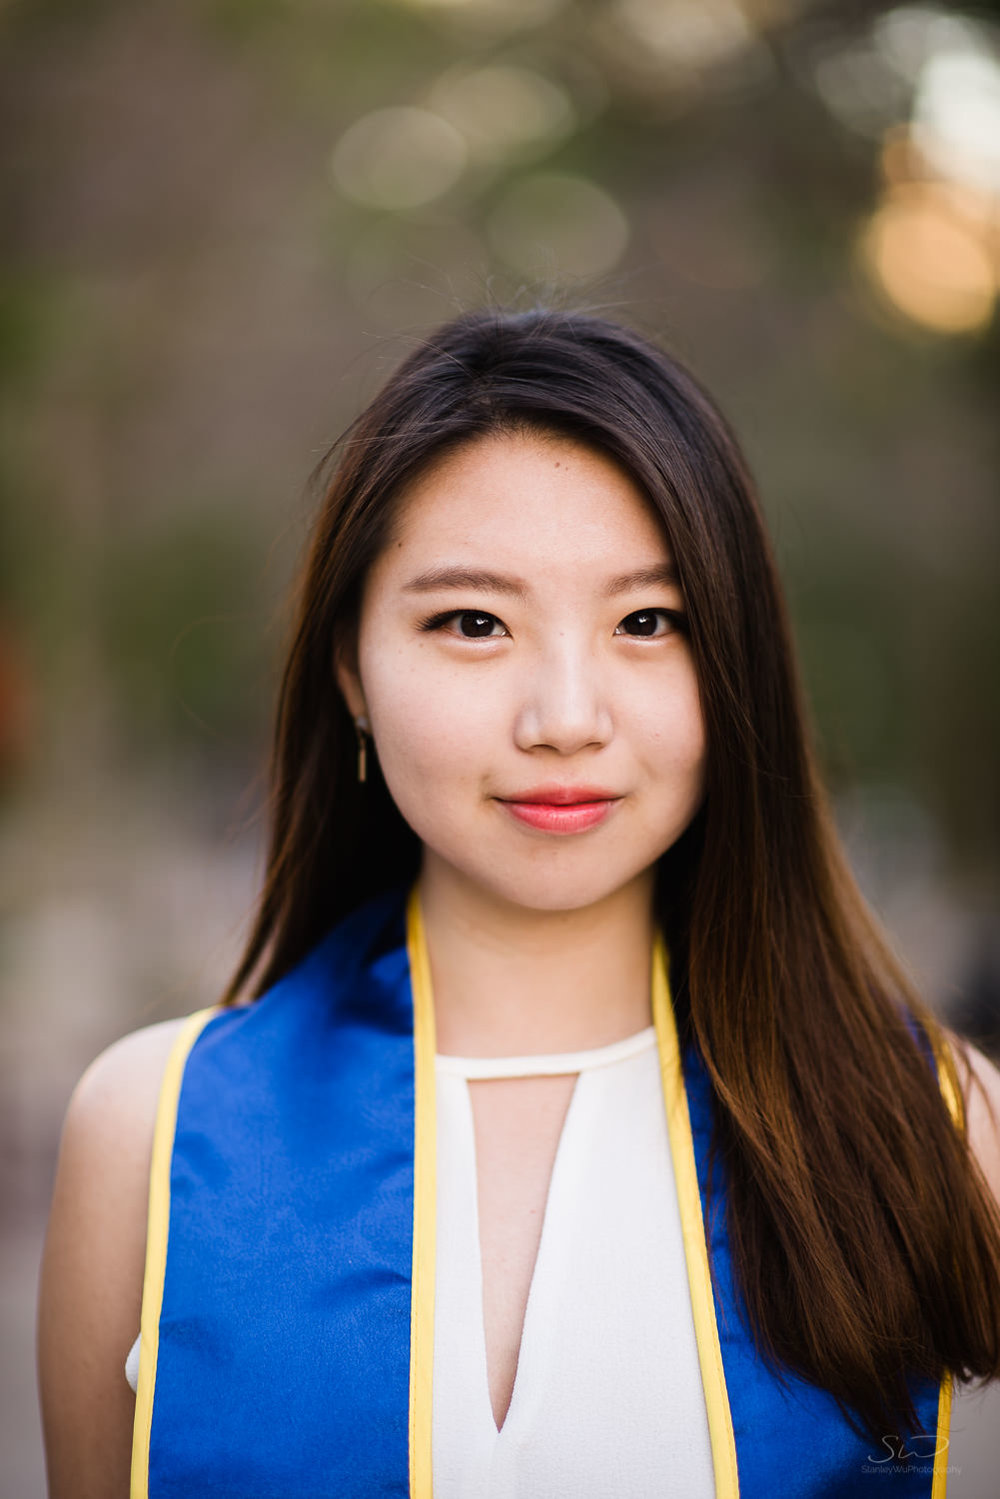 Senior Portrait.  Best graduation portrait photography, Los Angeles.